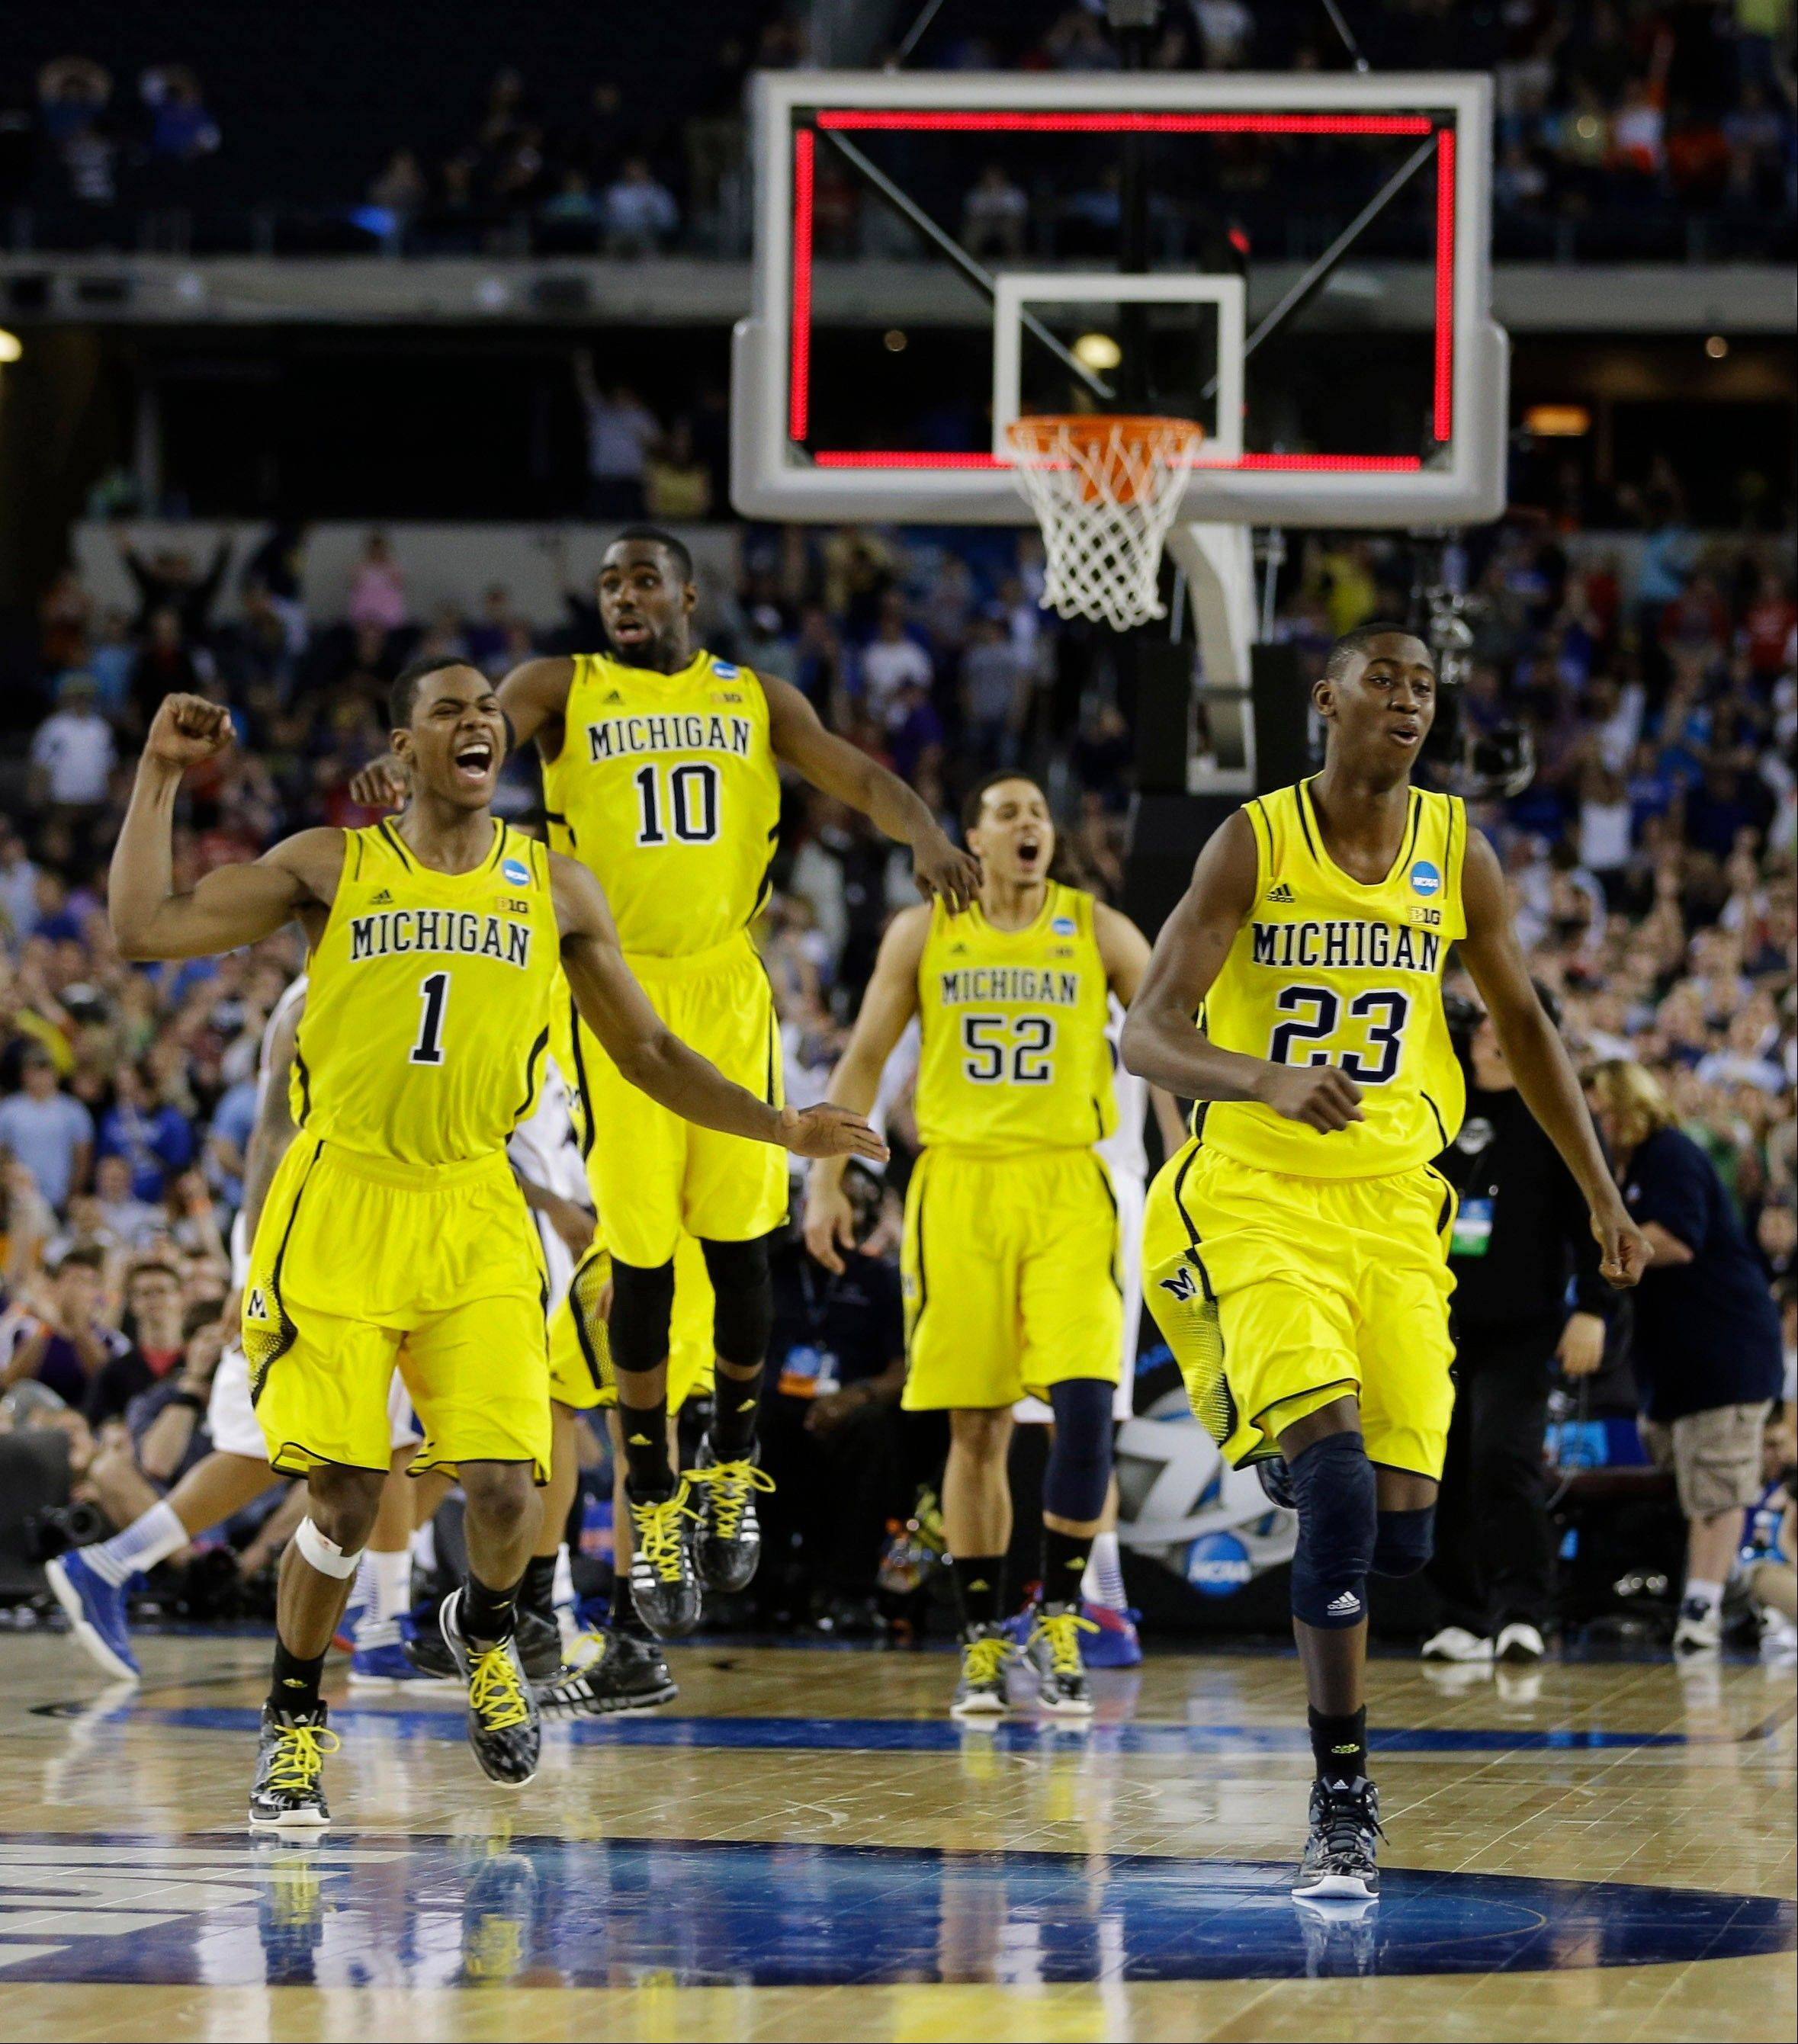 Michigan's Glenn Robinson III (1), Tim Hardaway Jr. (10), Jordan Morgan (52), Caris LeVert (23) celebrate after beating Kansas 87-85 in overtime of a regional semifinal game in the NCAA college basketball tournament, Friday, March 29, 2013, in Arlington, Texas. (AP Photo/David J. Phillip)